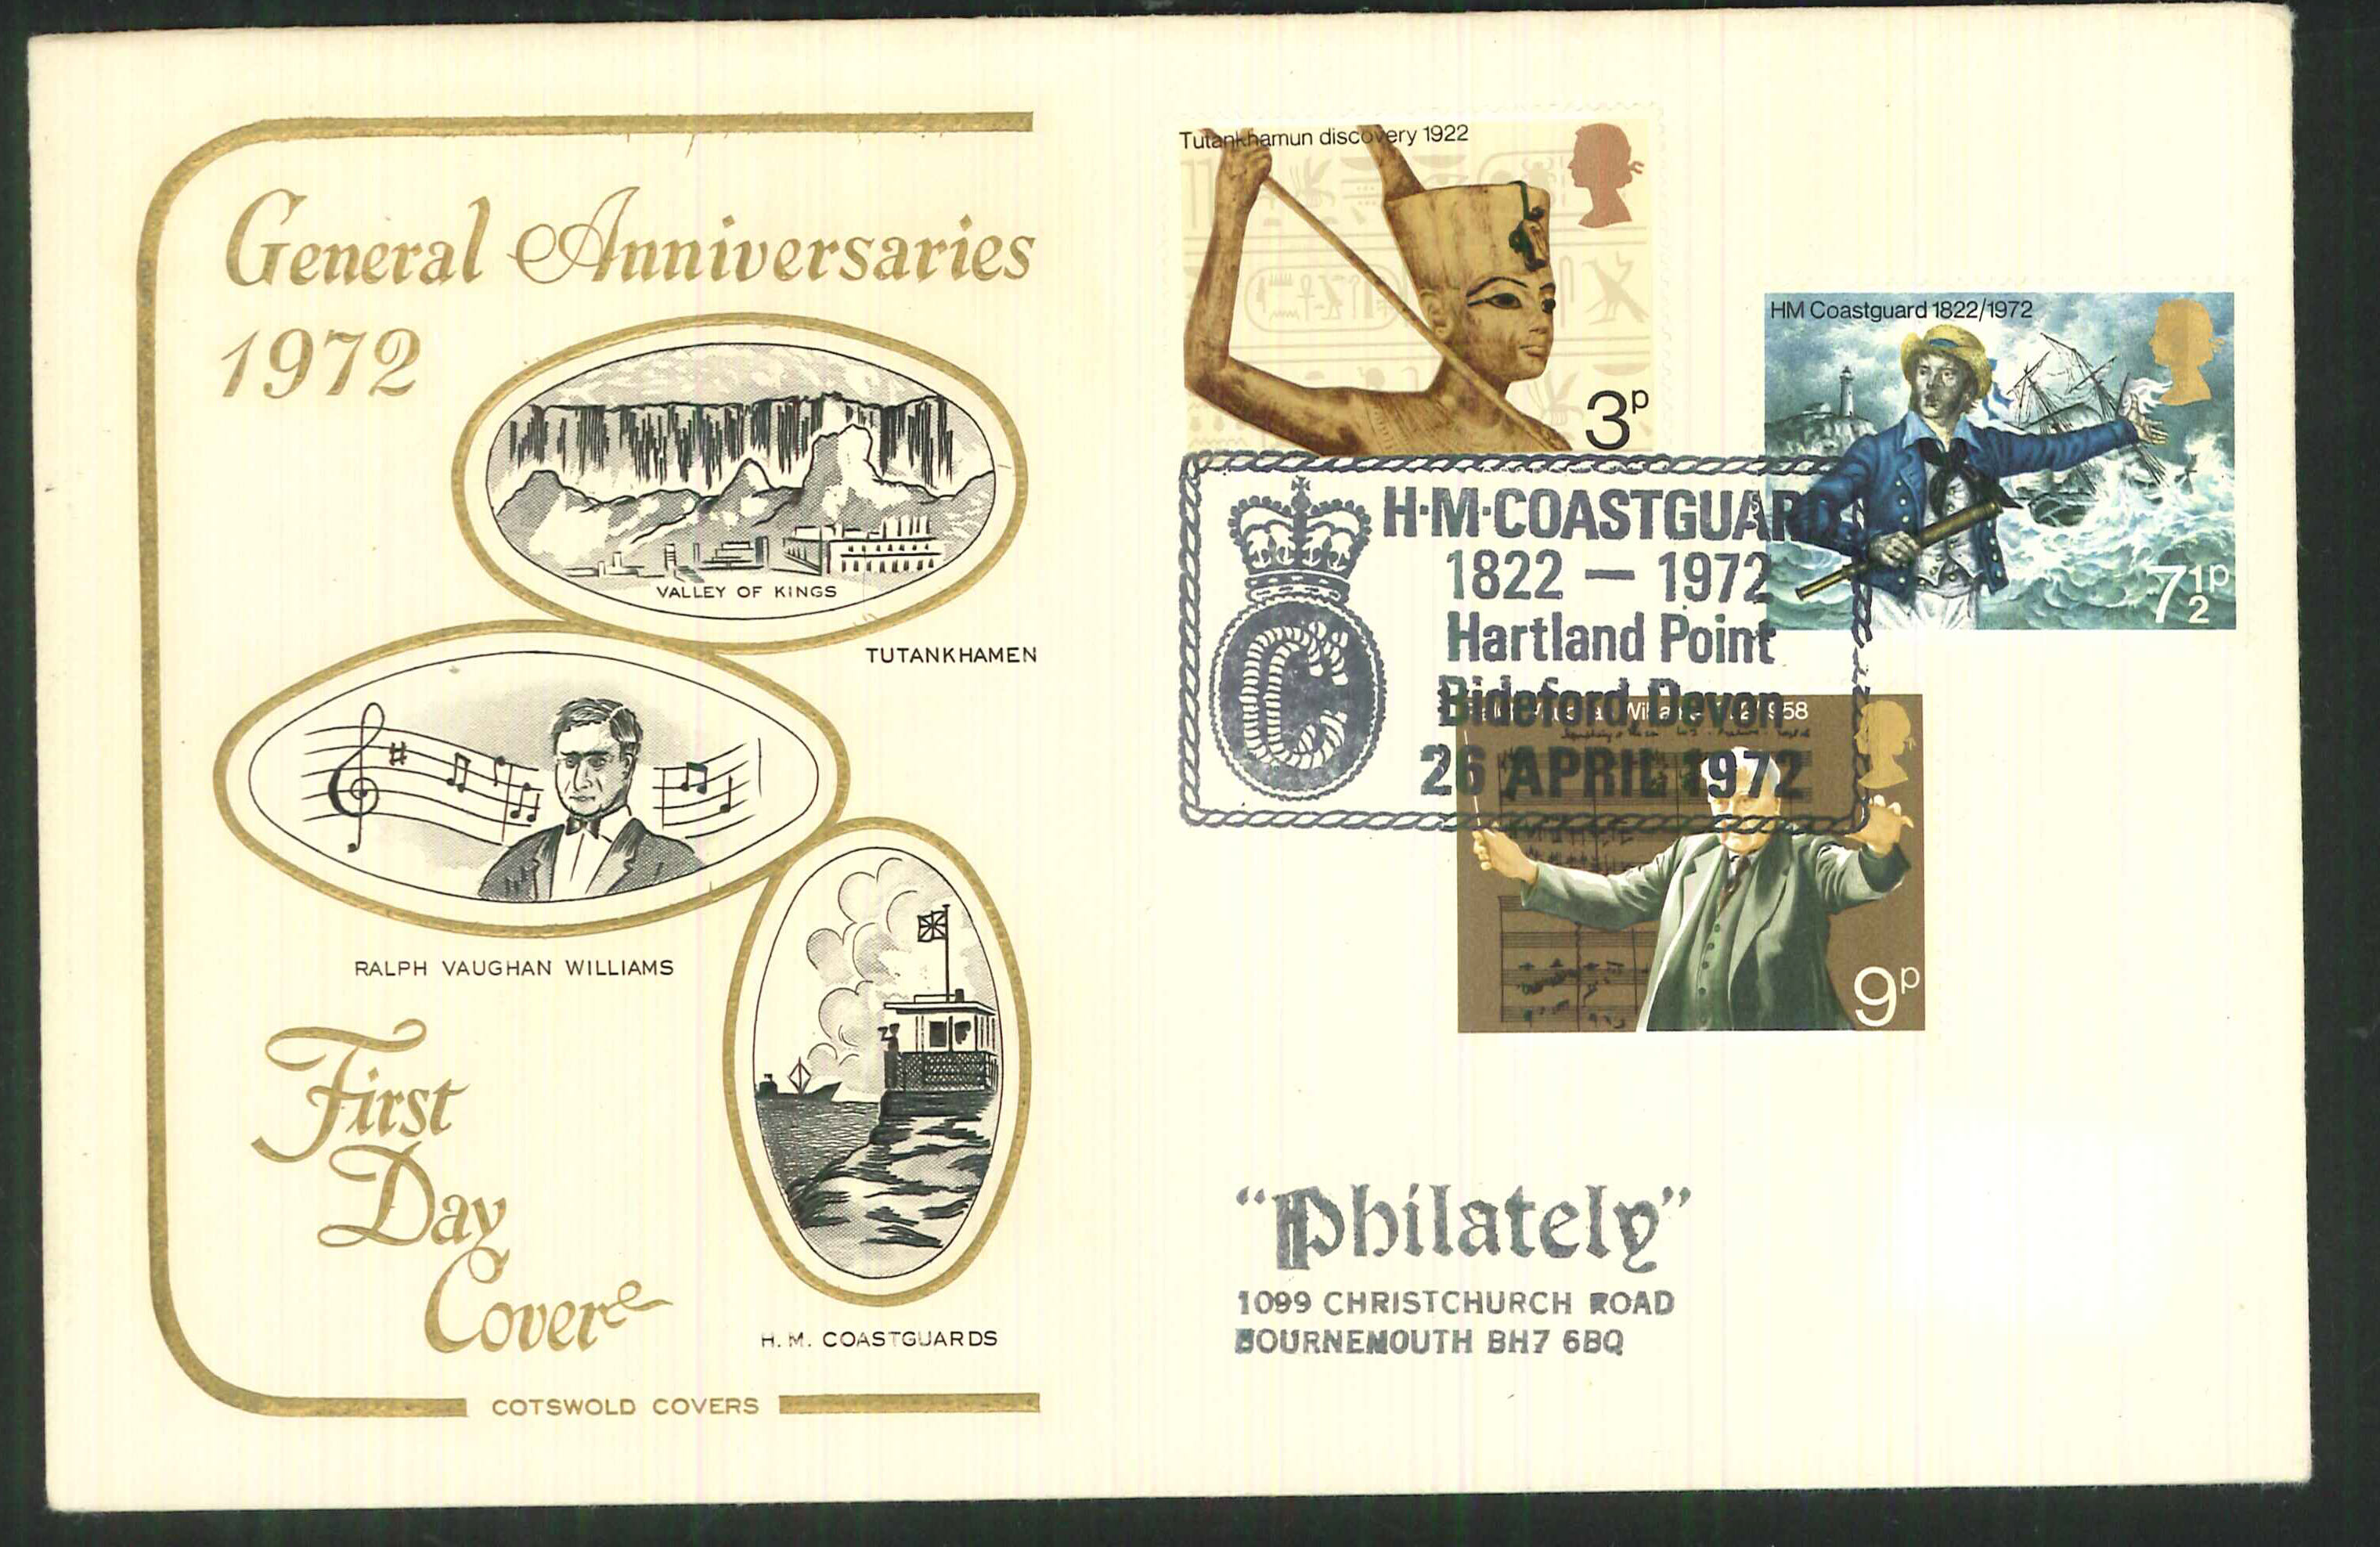 1972 Cotswold Anniversaries FDC Hartland Point Postmark